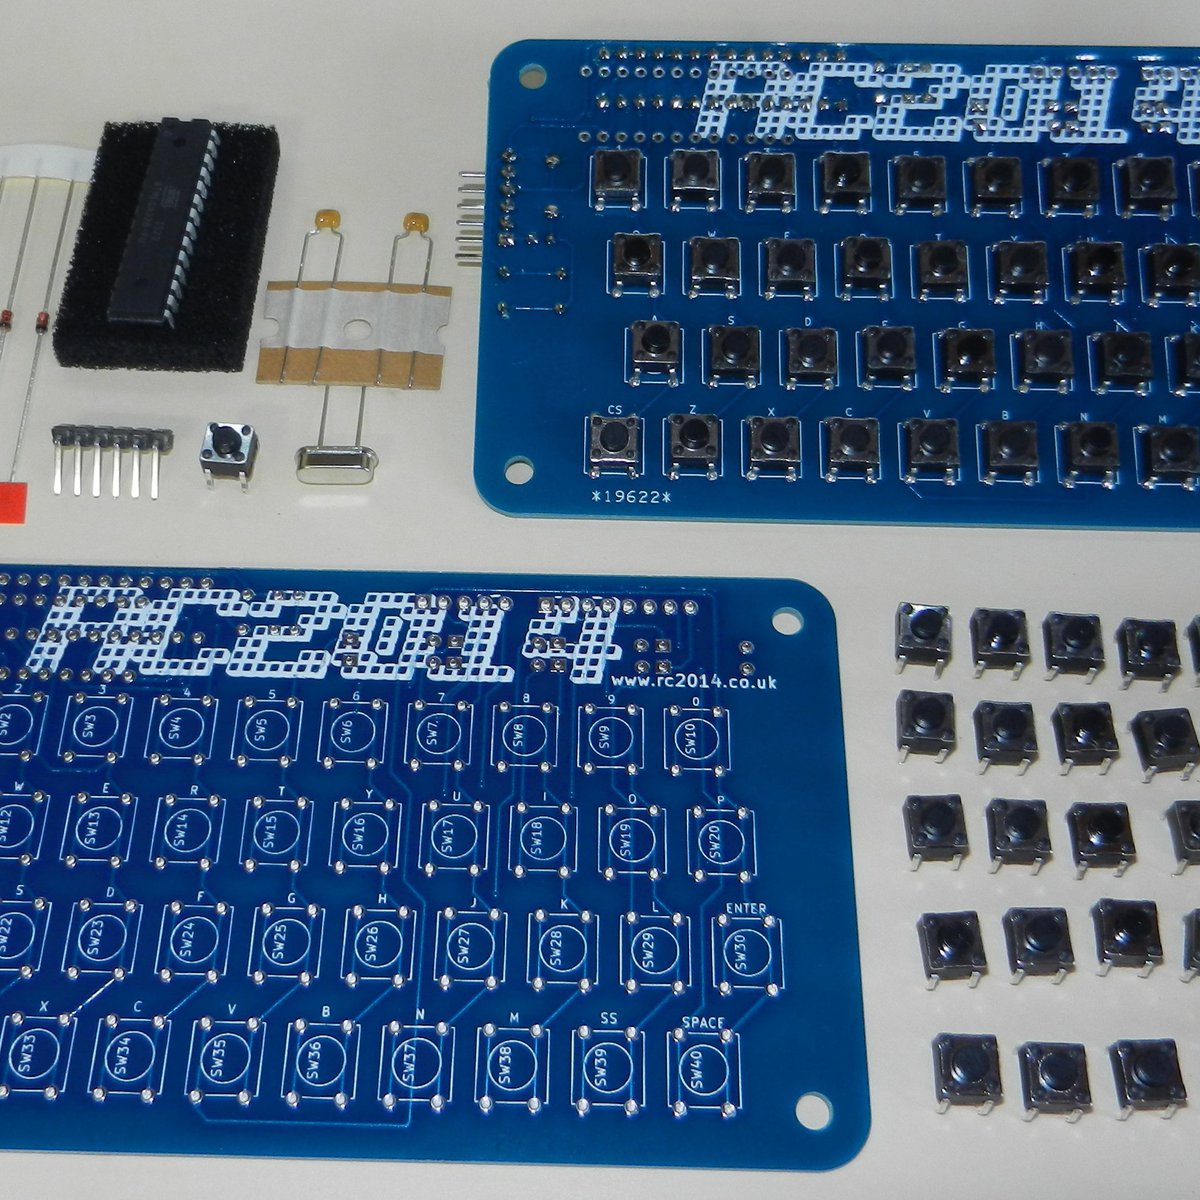 Universal micro keyboard from semachthemonkey on tindie biocorpaavc Images